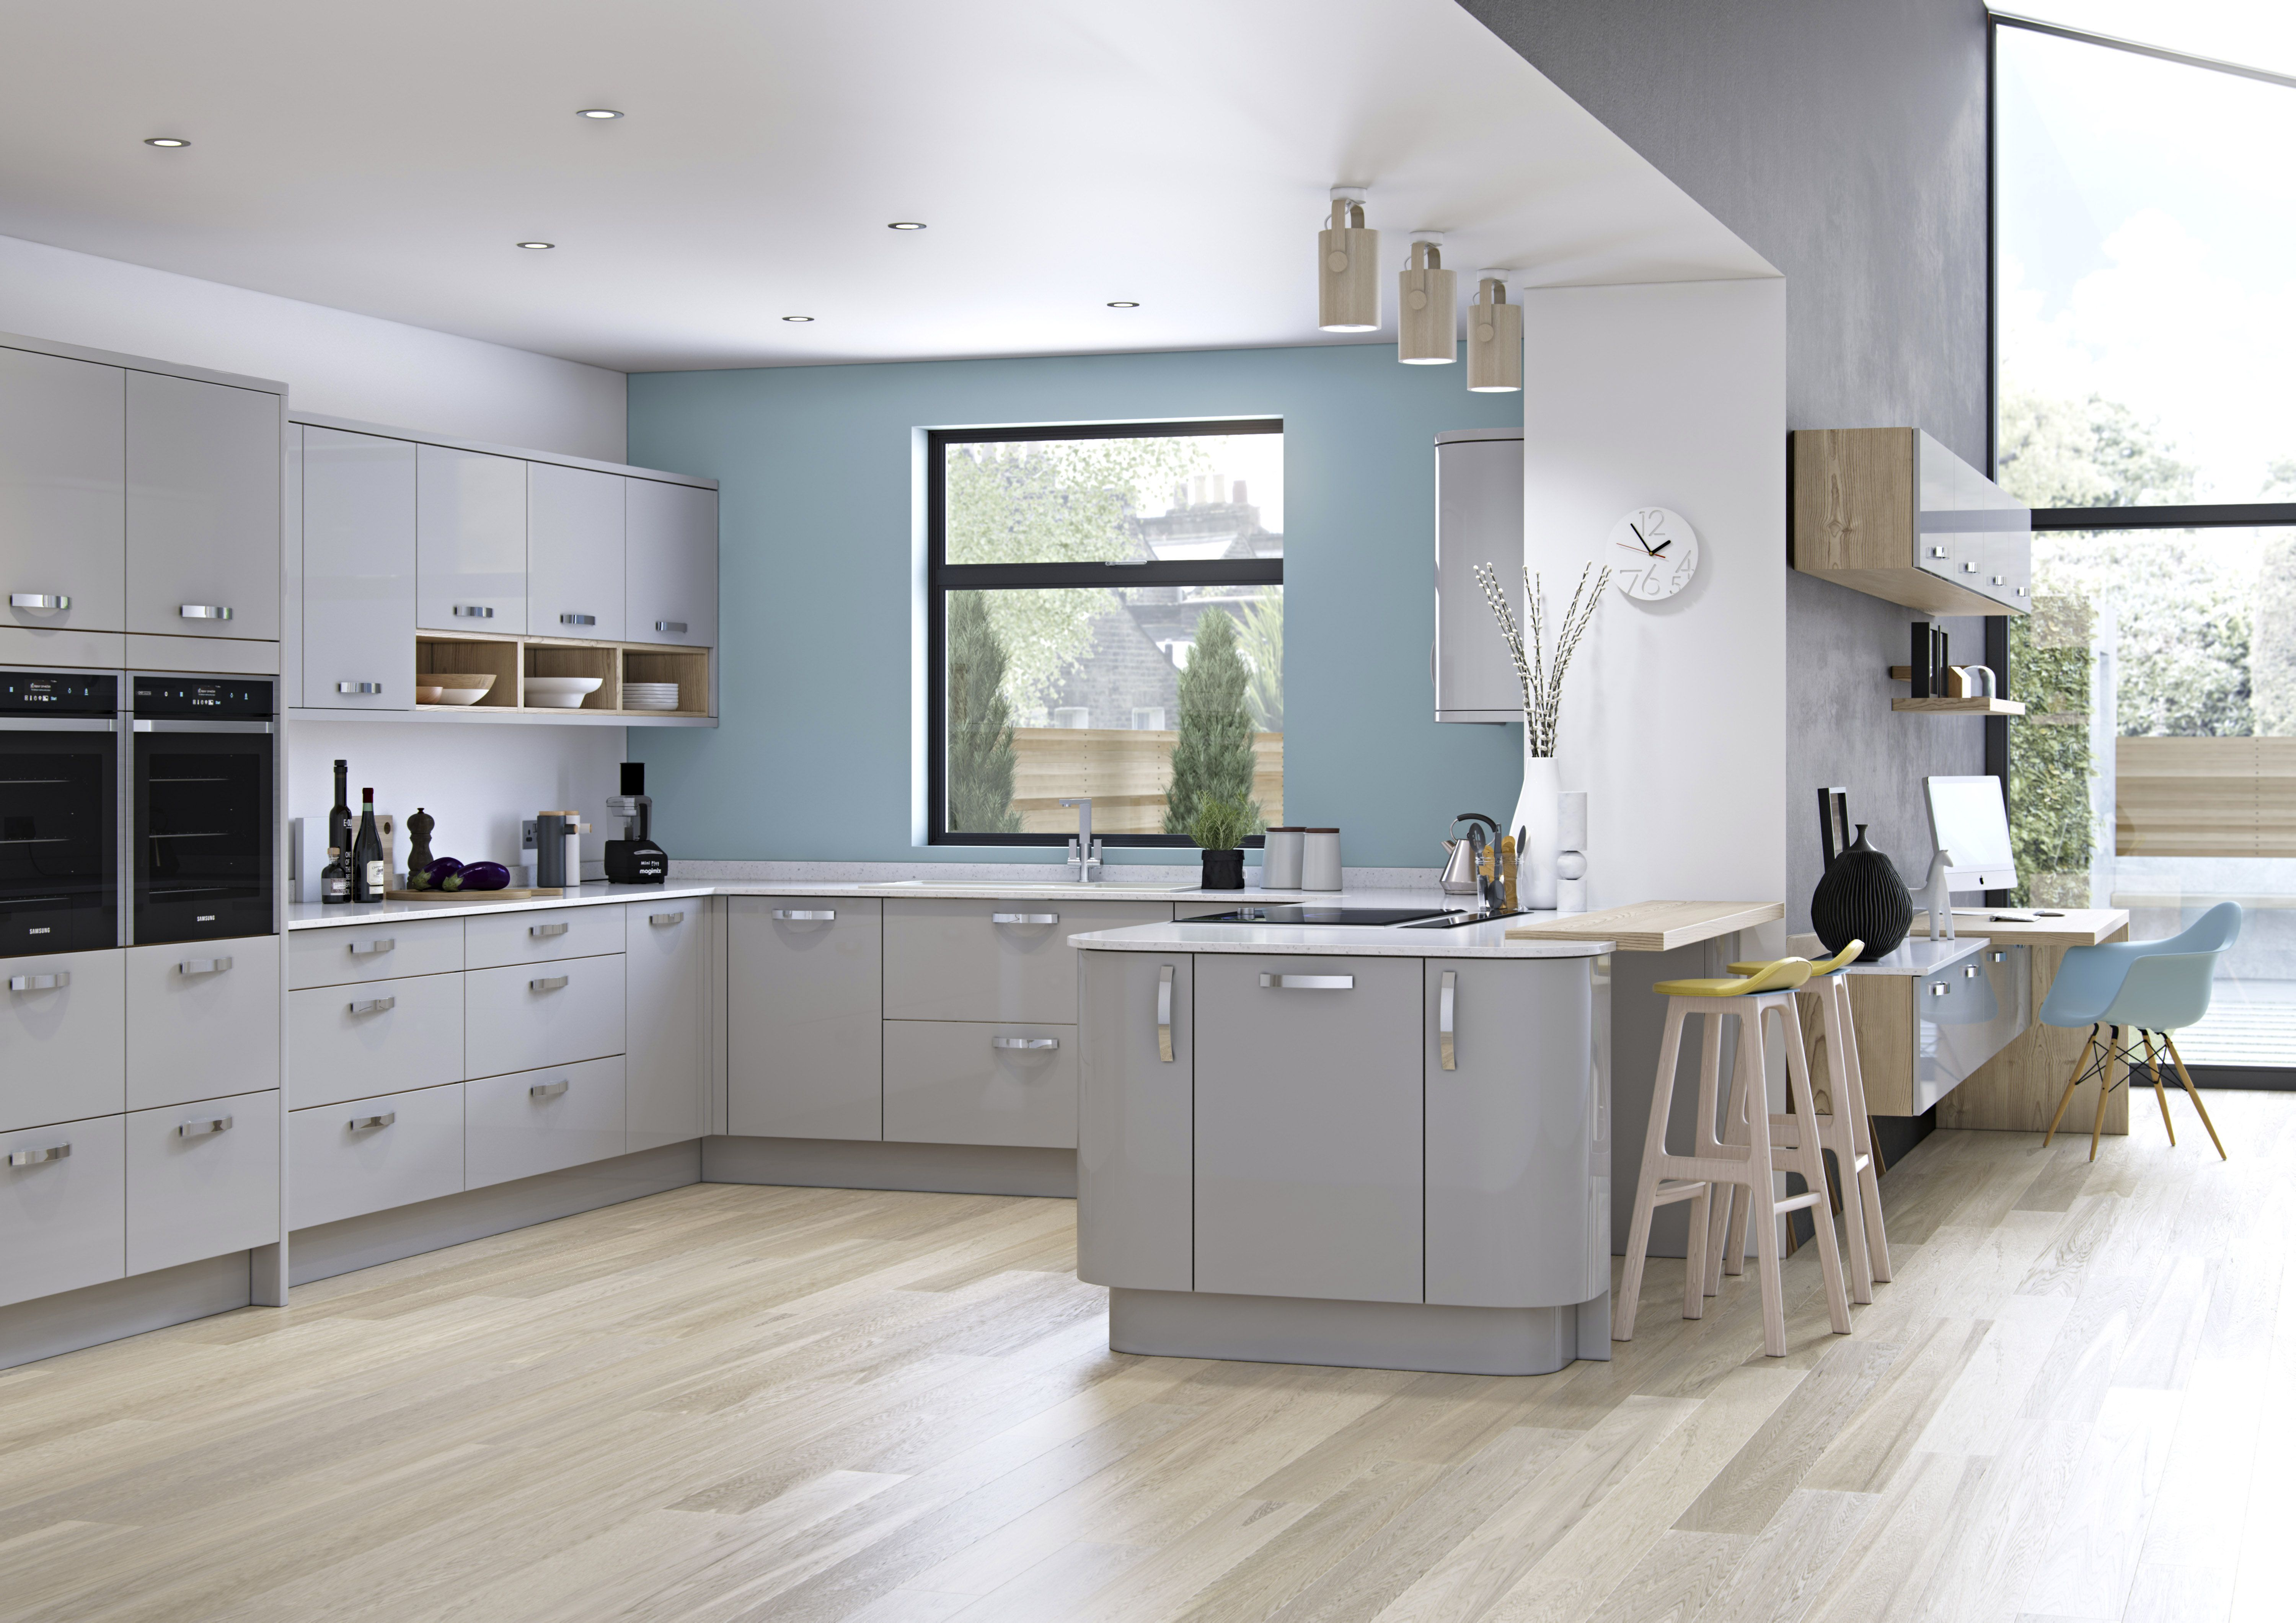 Modern Zola Gloss Kitchen In Light Grey Featuring Curved Doors,